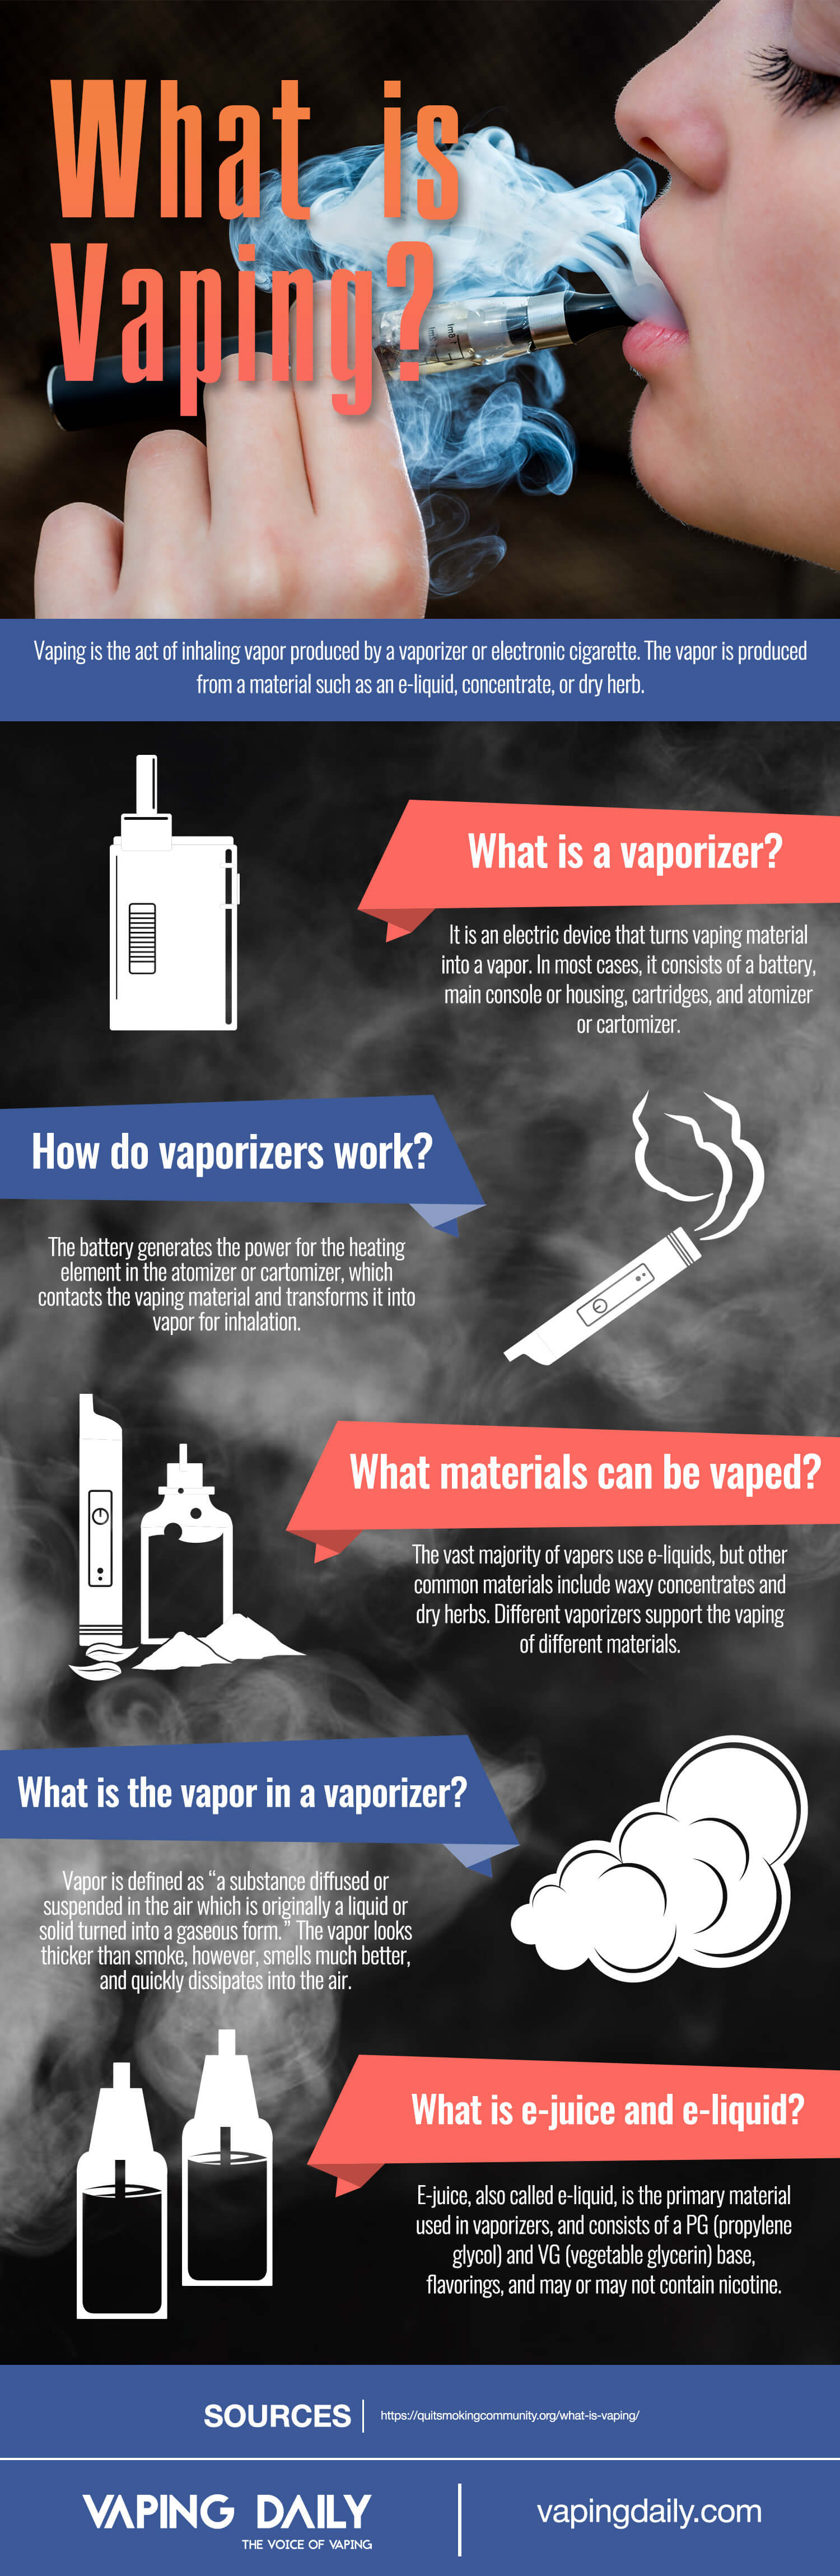 What Is Vaping Ultimate Guide And Infographic - Invoice template free download cheapest online vapor store